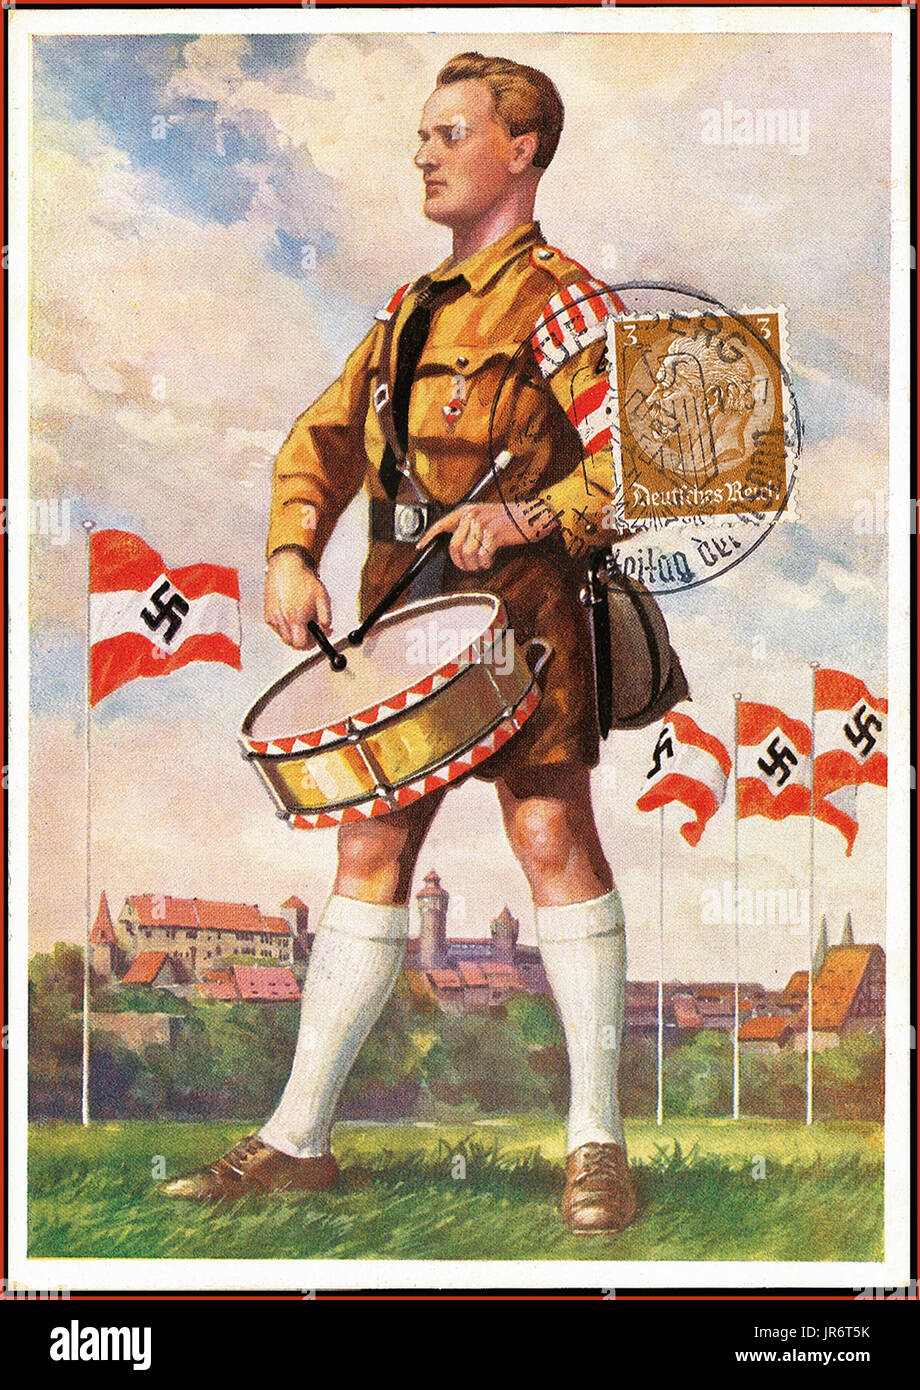 NAZI PROPAGANDA NUREMBERG RALLIES Pre-War 1937 Nazi Reich Party Day Propaganda Card, illustrating Hitler youth drummer on parade ground, stamp affixed dated Nurnberg 14.9.37 - Stock Image